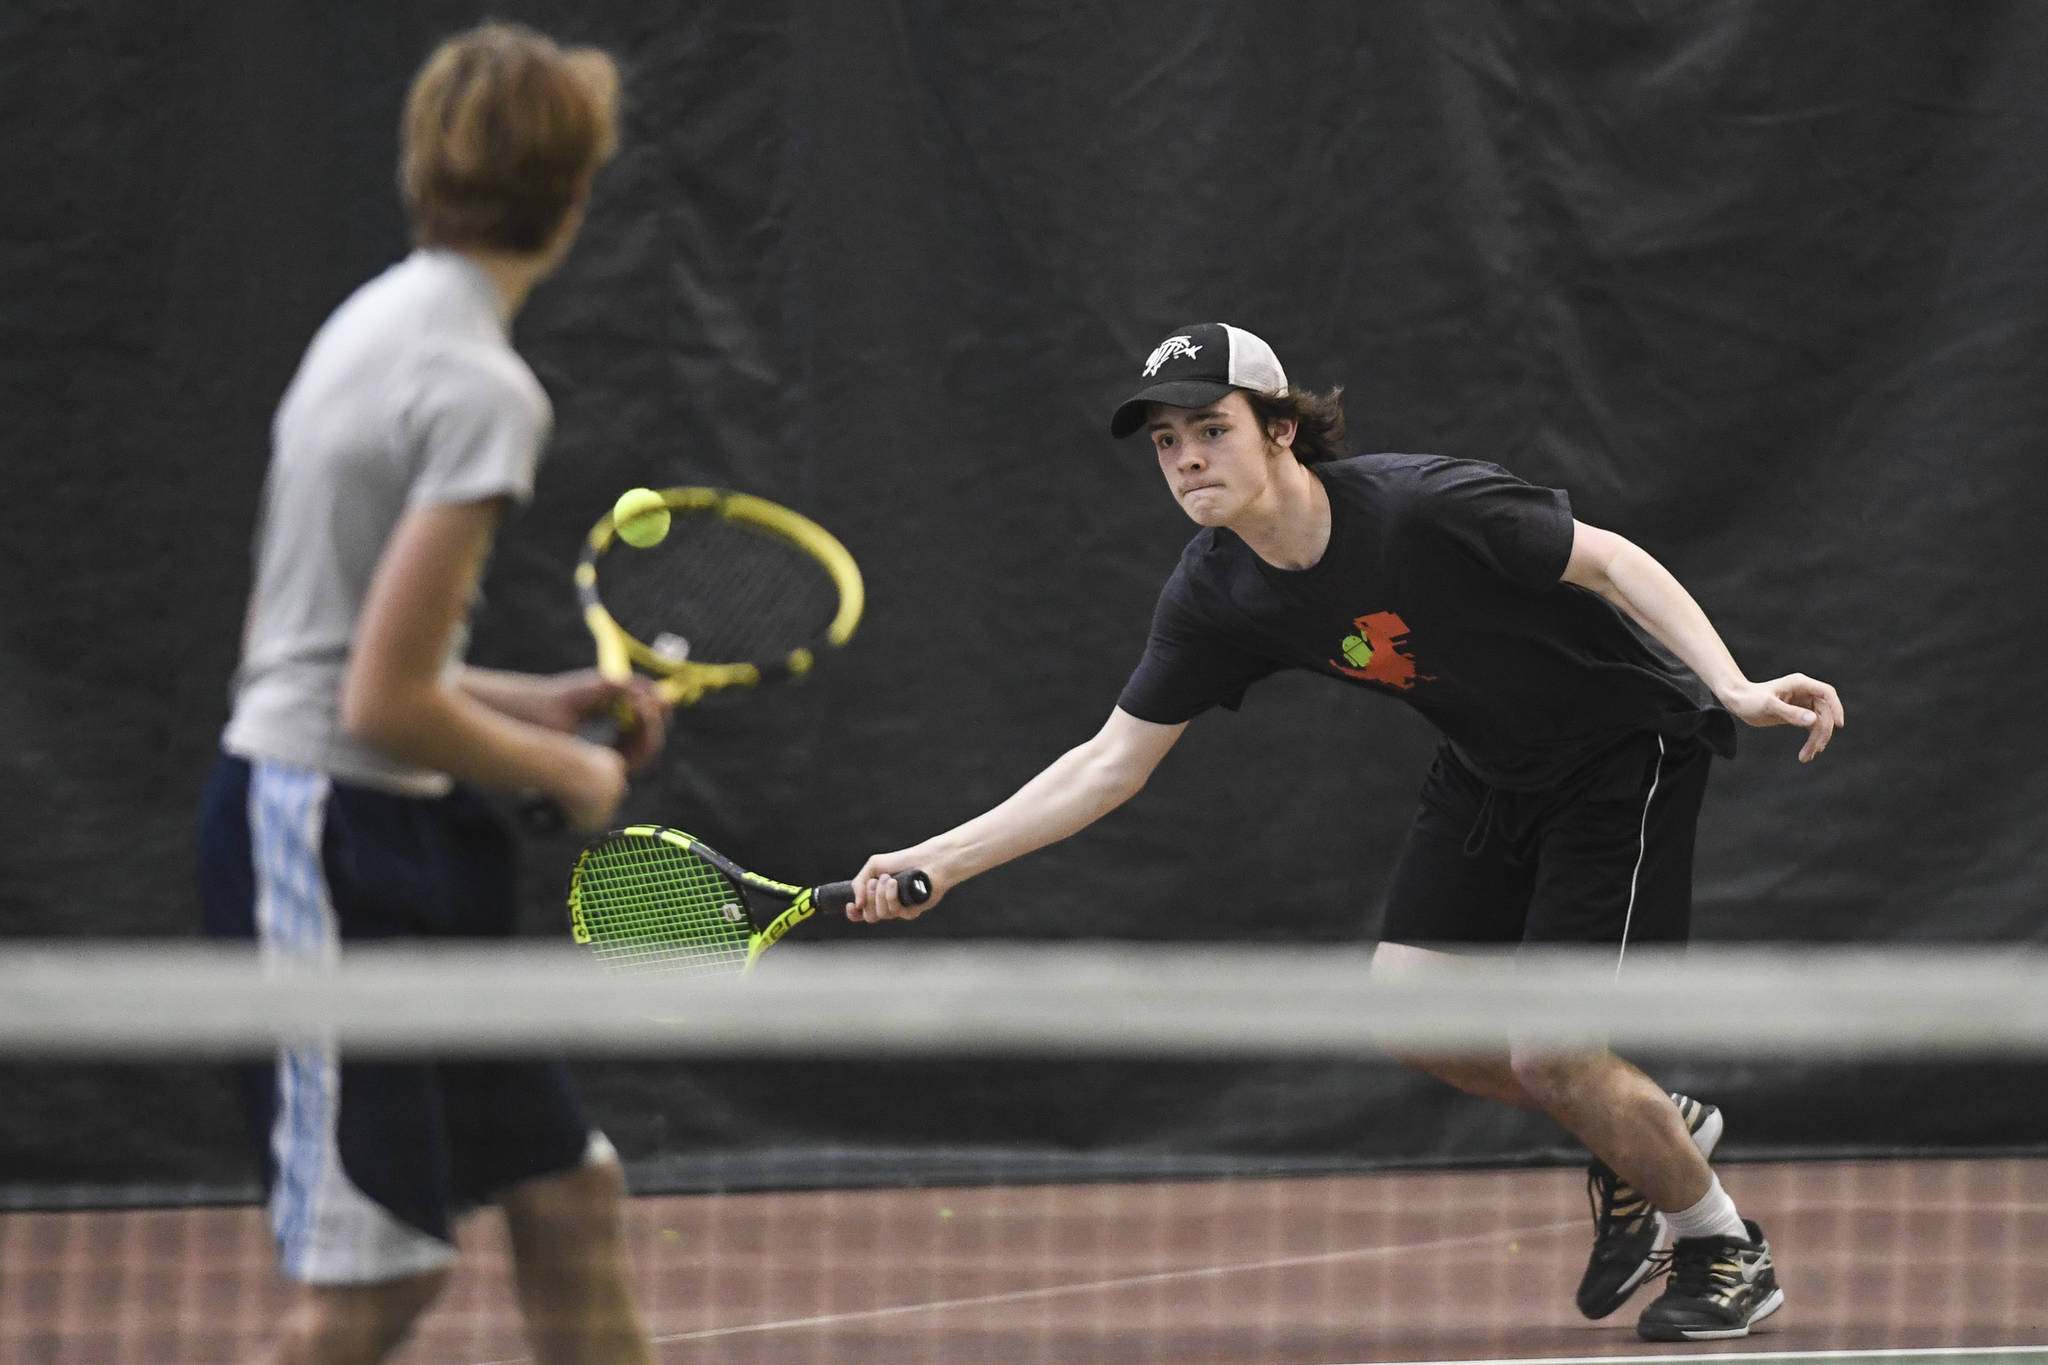 William Smoker, right, returns a forehand in a boys doubles' semifinal with partner Will Rehfeldt against Liam Penn and Callan Smith during the Region V Tennis Tournament at The Alaska Club/JRC on Saturday, Sept. 28, 2019. Smoker/Rehfeldt won 7-6, 6-2. (Michael Penn | Juneau Empire)